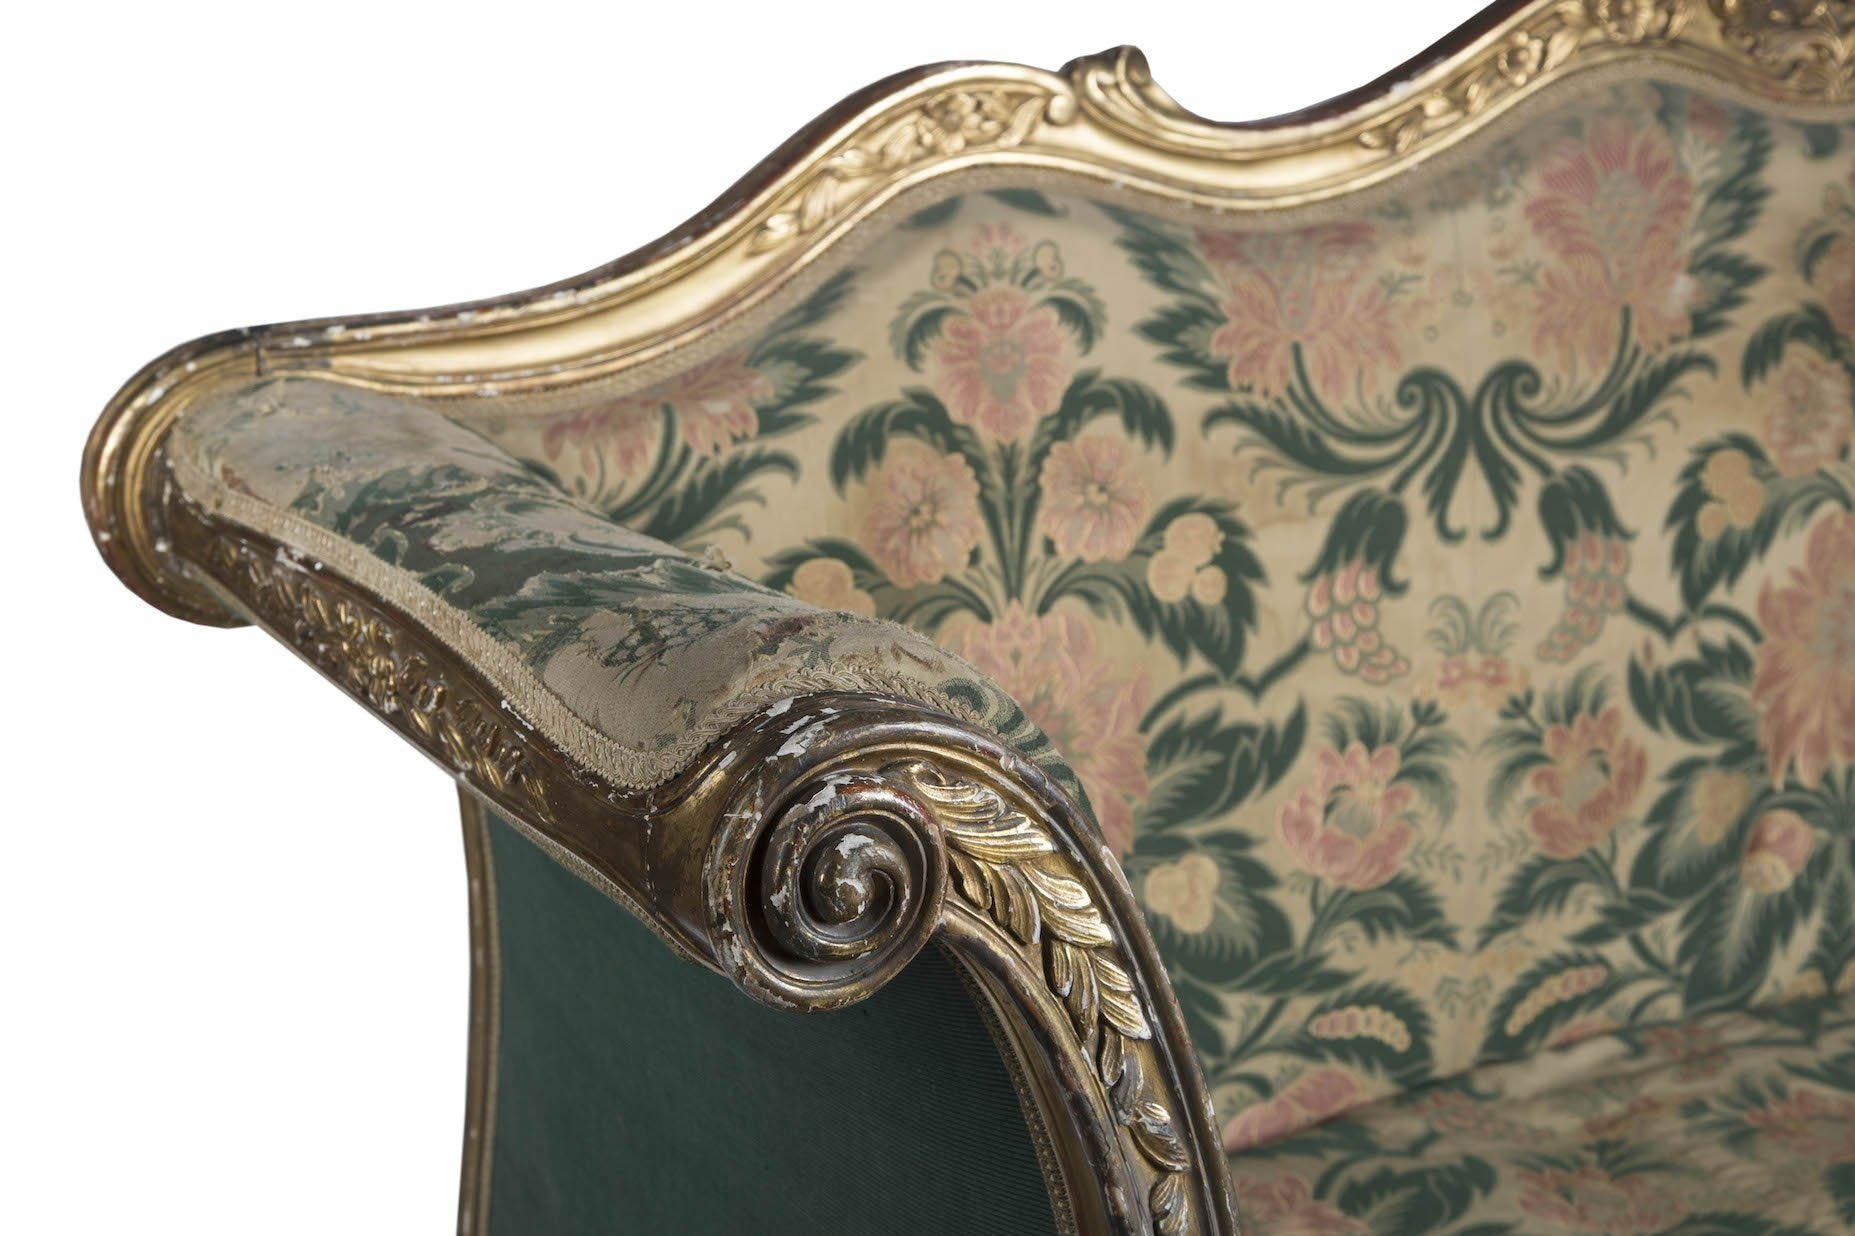 1875 English Giltwood Sofa - A Modern Grand Tour